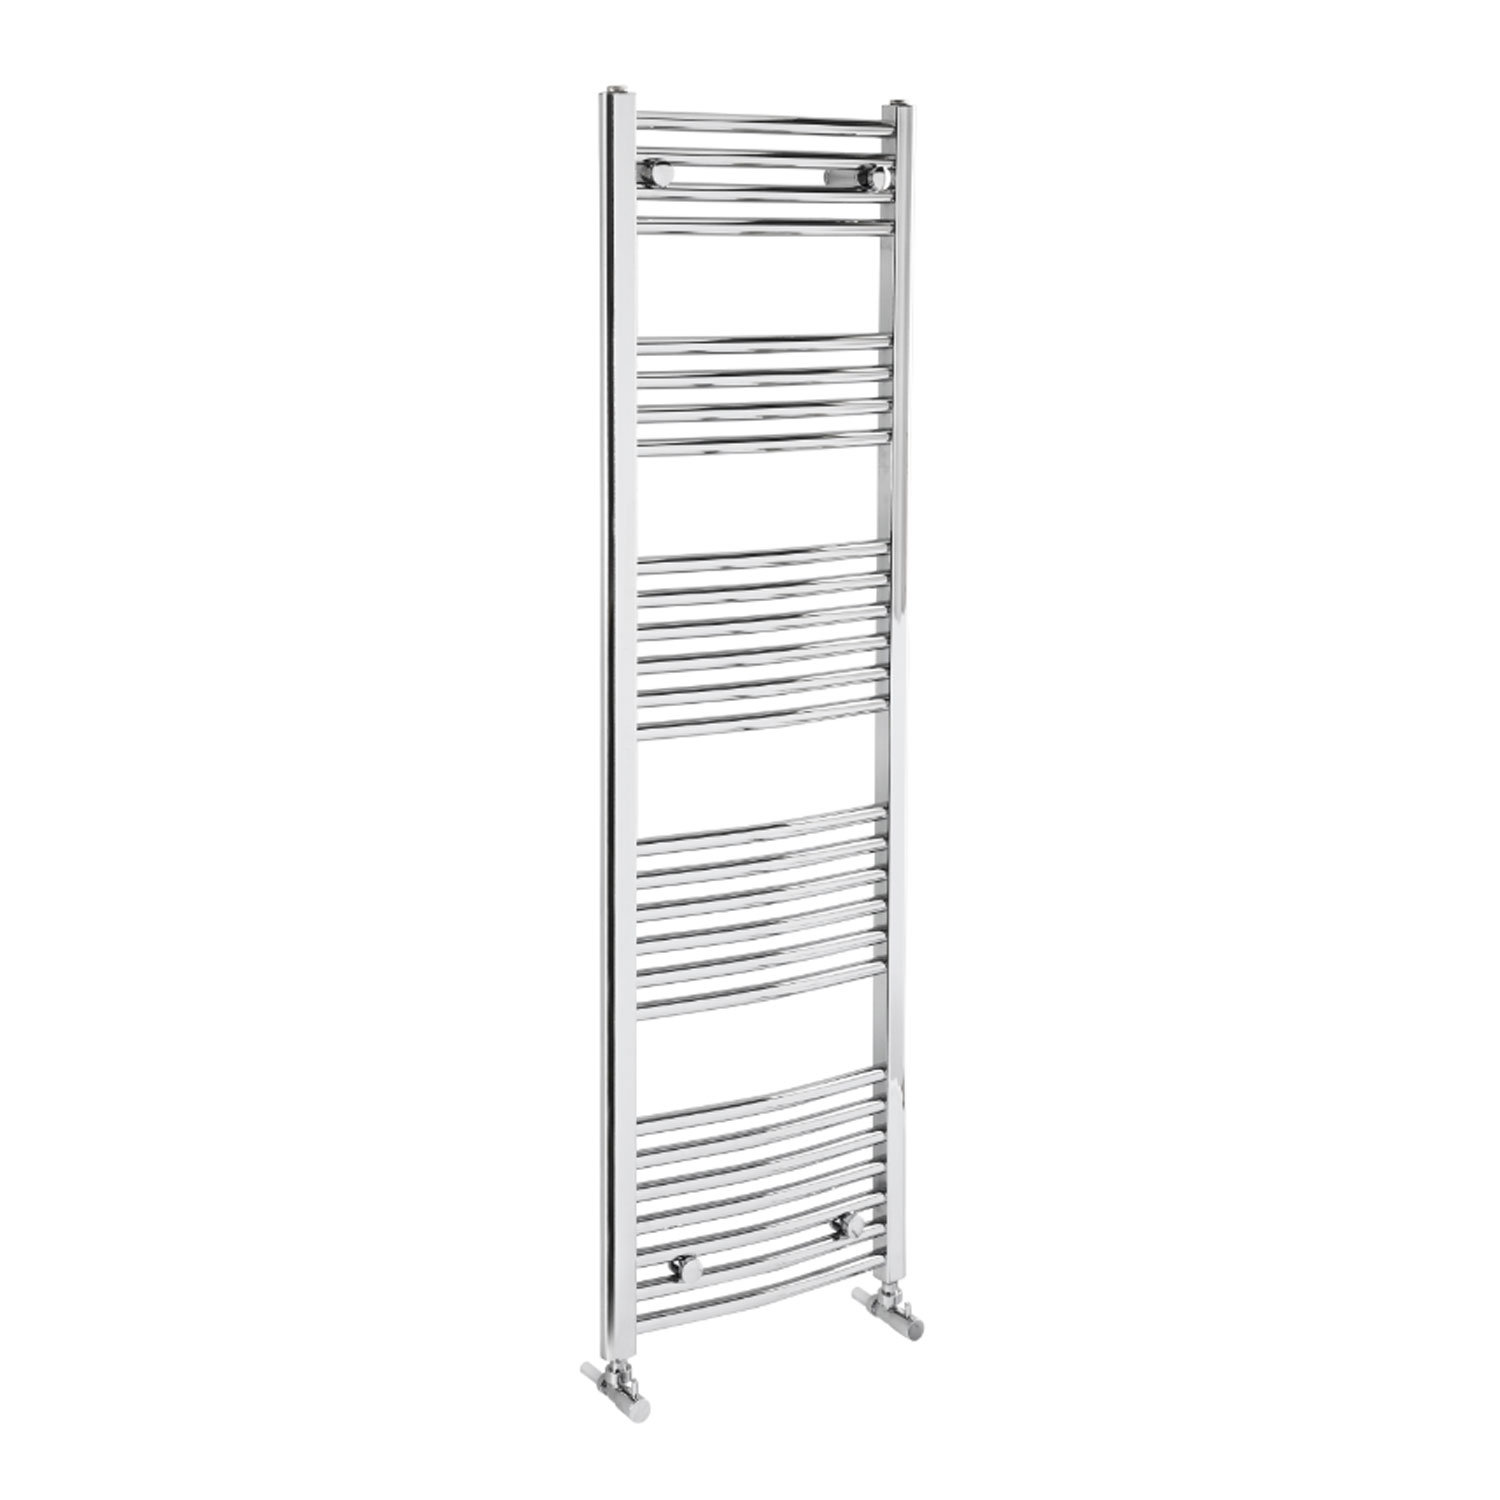 Verona Curved Designer Heated Towel Rail 1500mm H x 600mm W Chrome